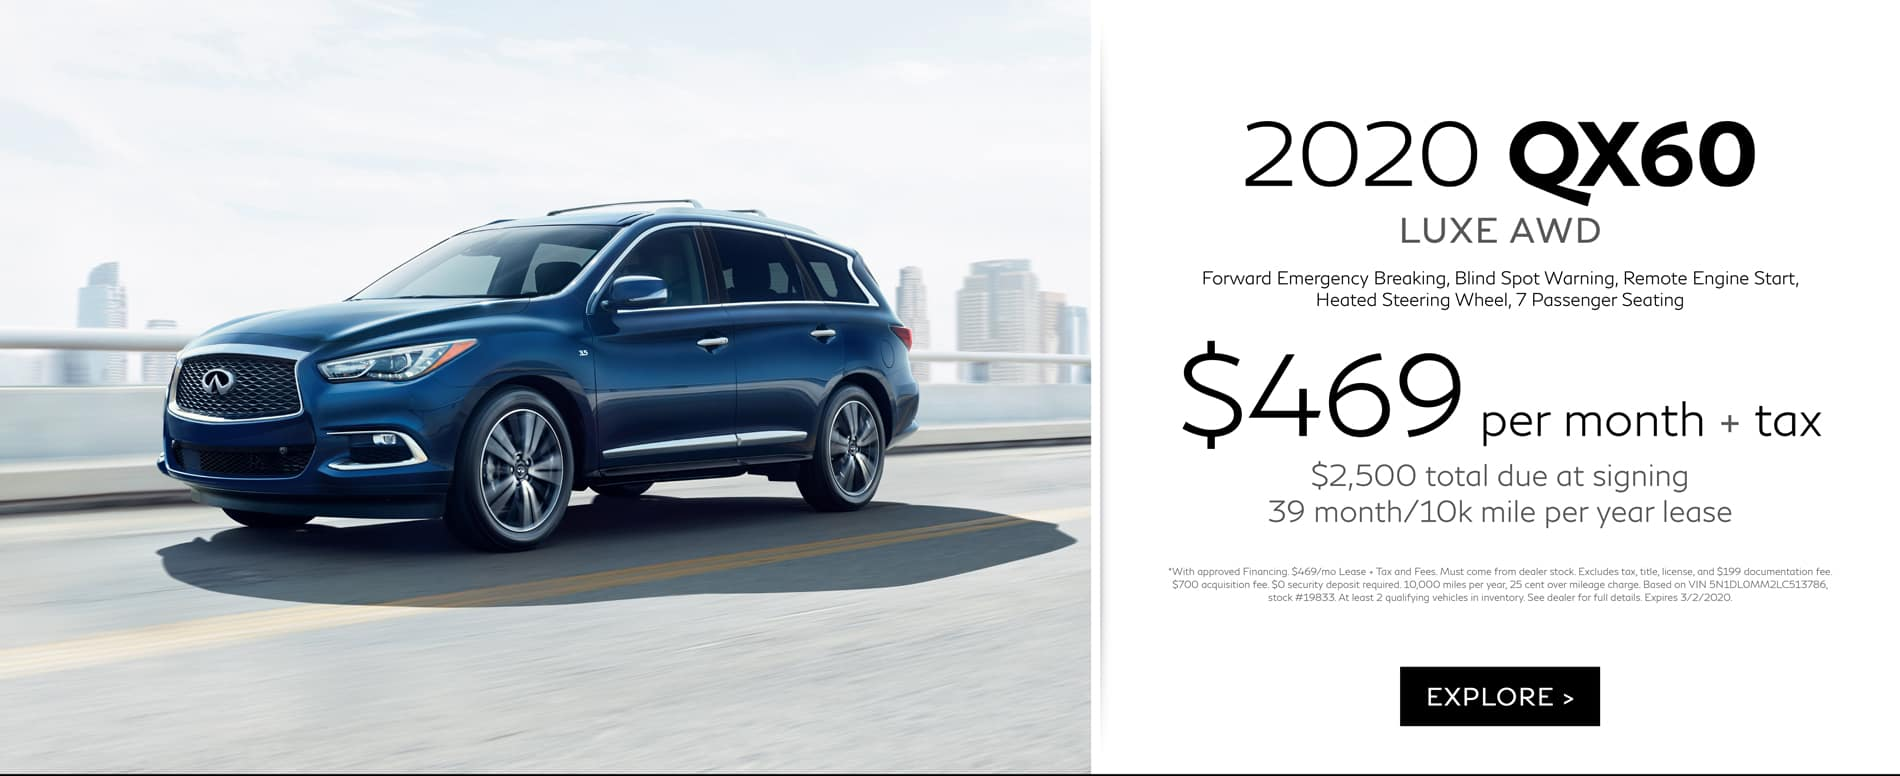 February QX60 Lease offer $469